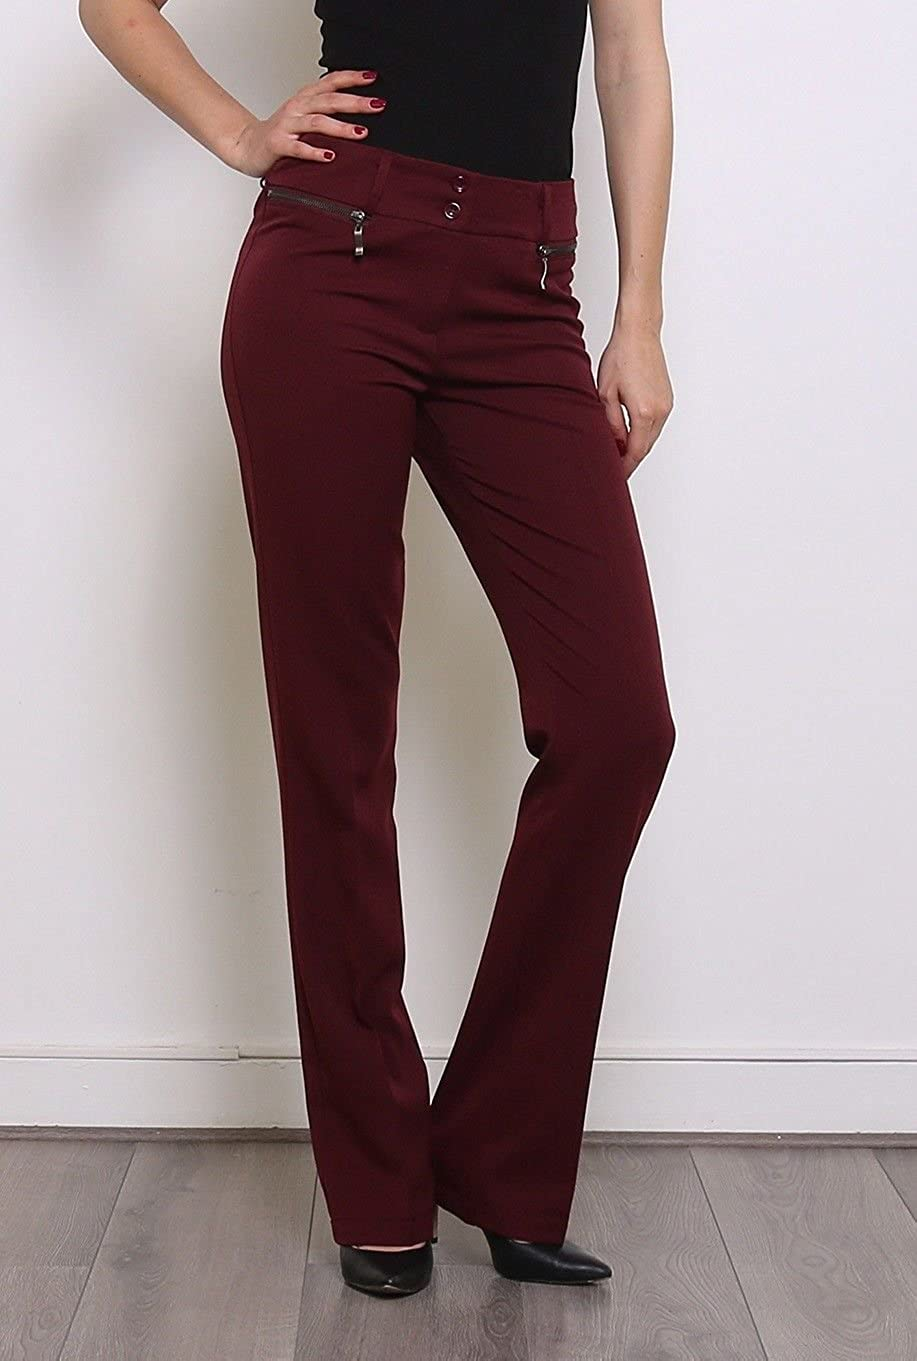 Low Rise Classic Bootcut Trousers Tailor Fit Women/'s Office Style Trousers 6-14